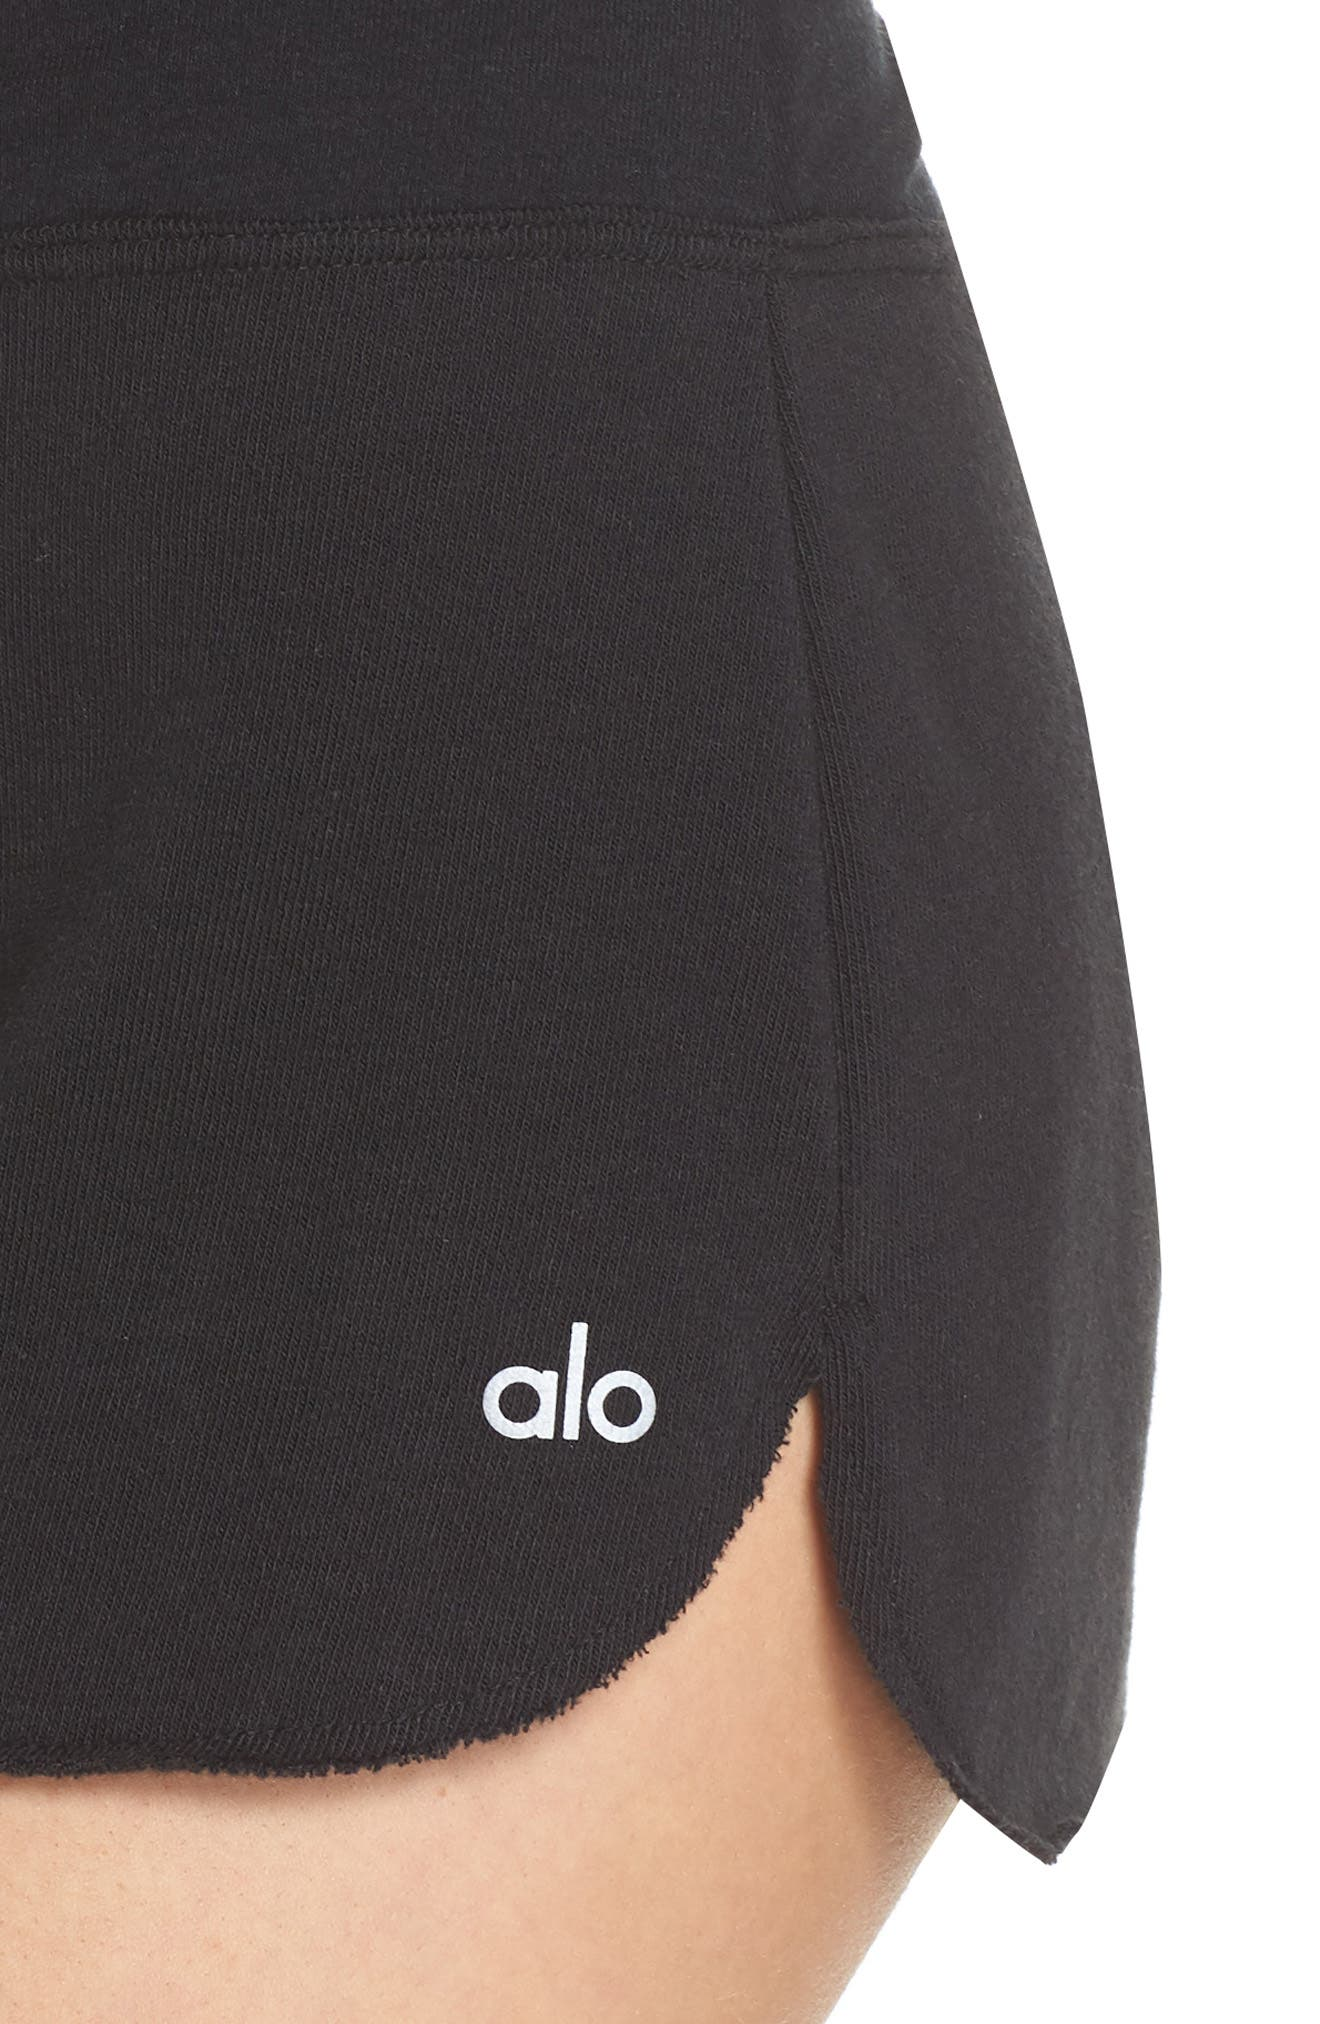 Boarder Shorts,                             Alternate thumbnail 4, color,                             001